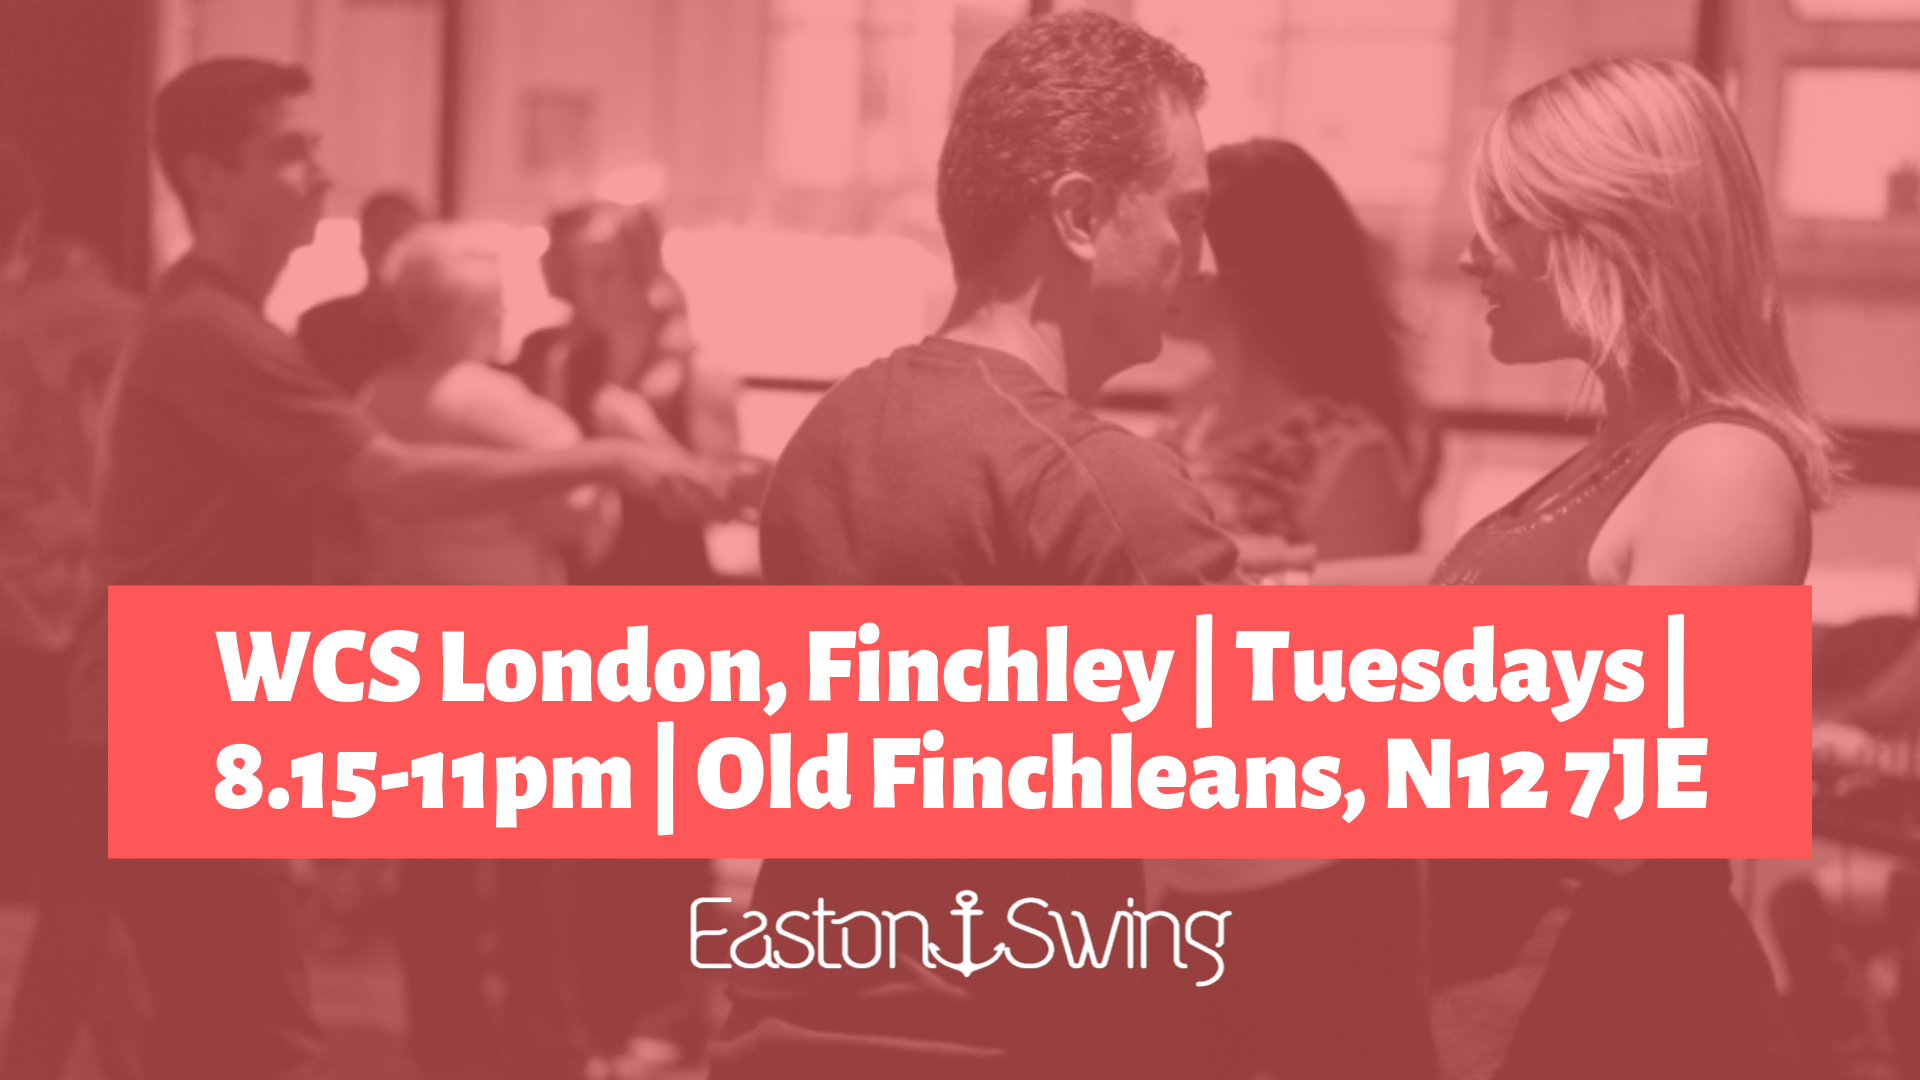 a photograph of people dancing West Coast Swing with a red filter overlaid and text regarding a weekly class in finchley, london on tuesdays